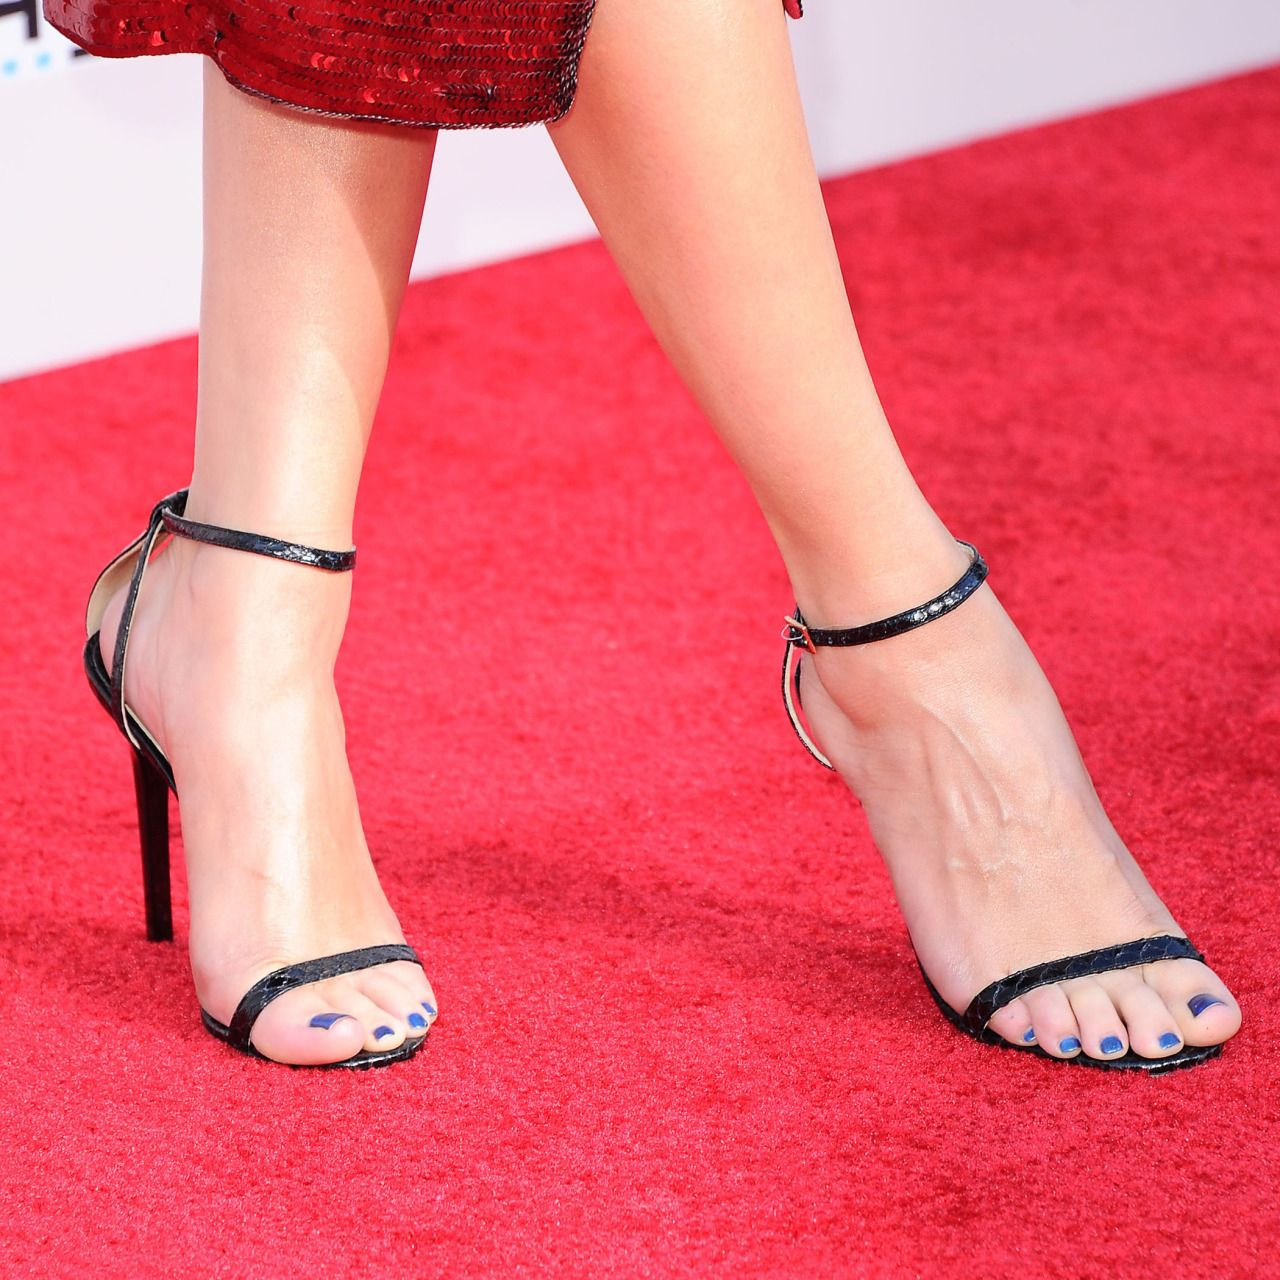 Selena Gomez In Jimmy Choo  Sexy Shoes And Feet -4003